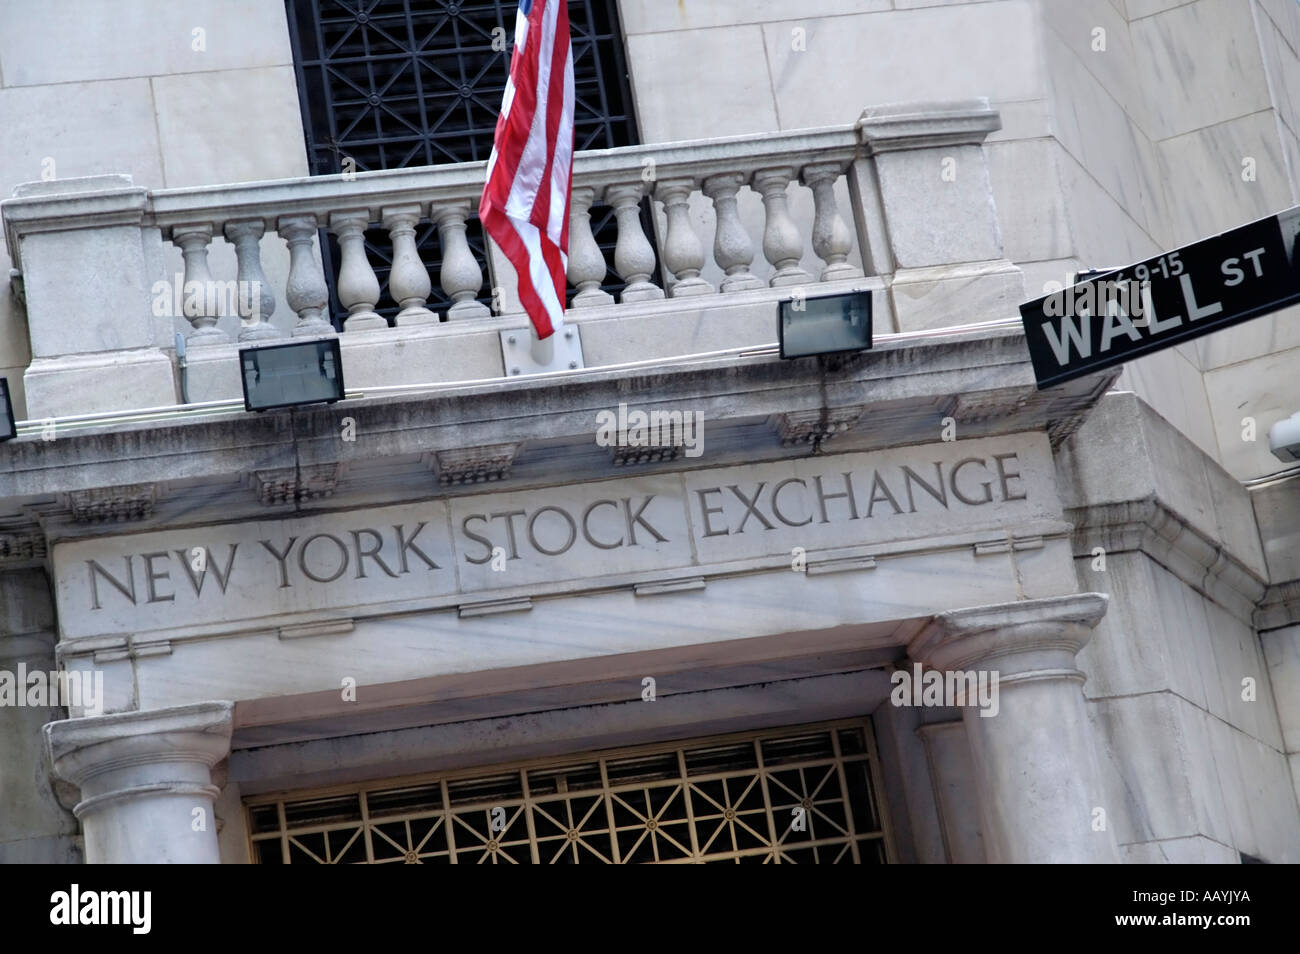 Wall Street ingresso al New York Stock Exchange building Immagini Stock